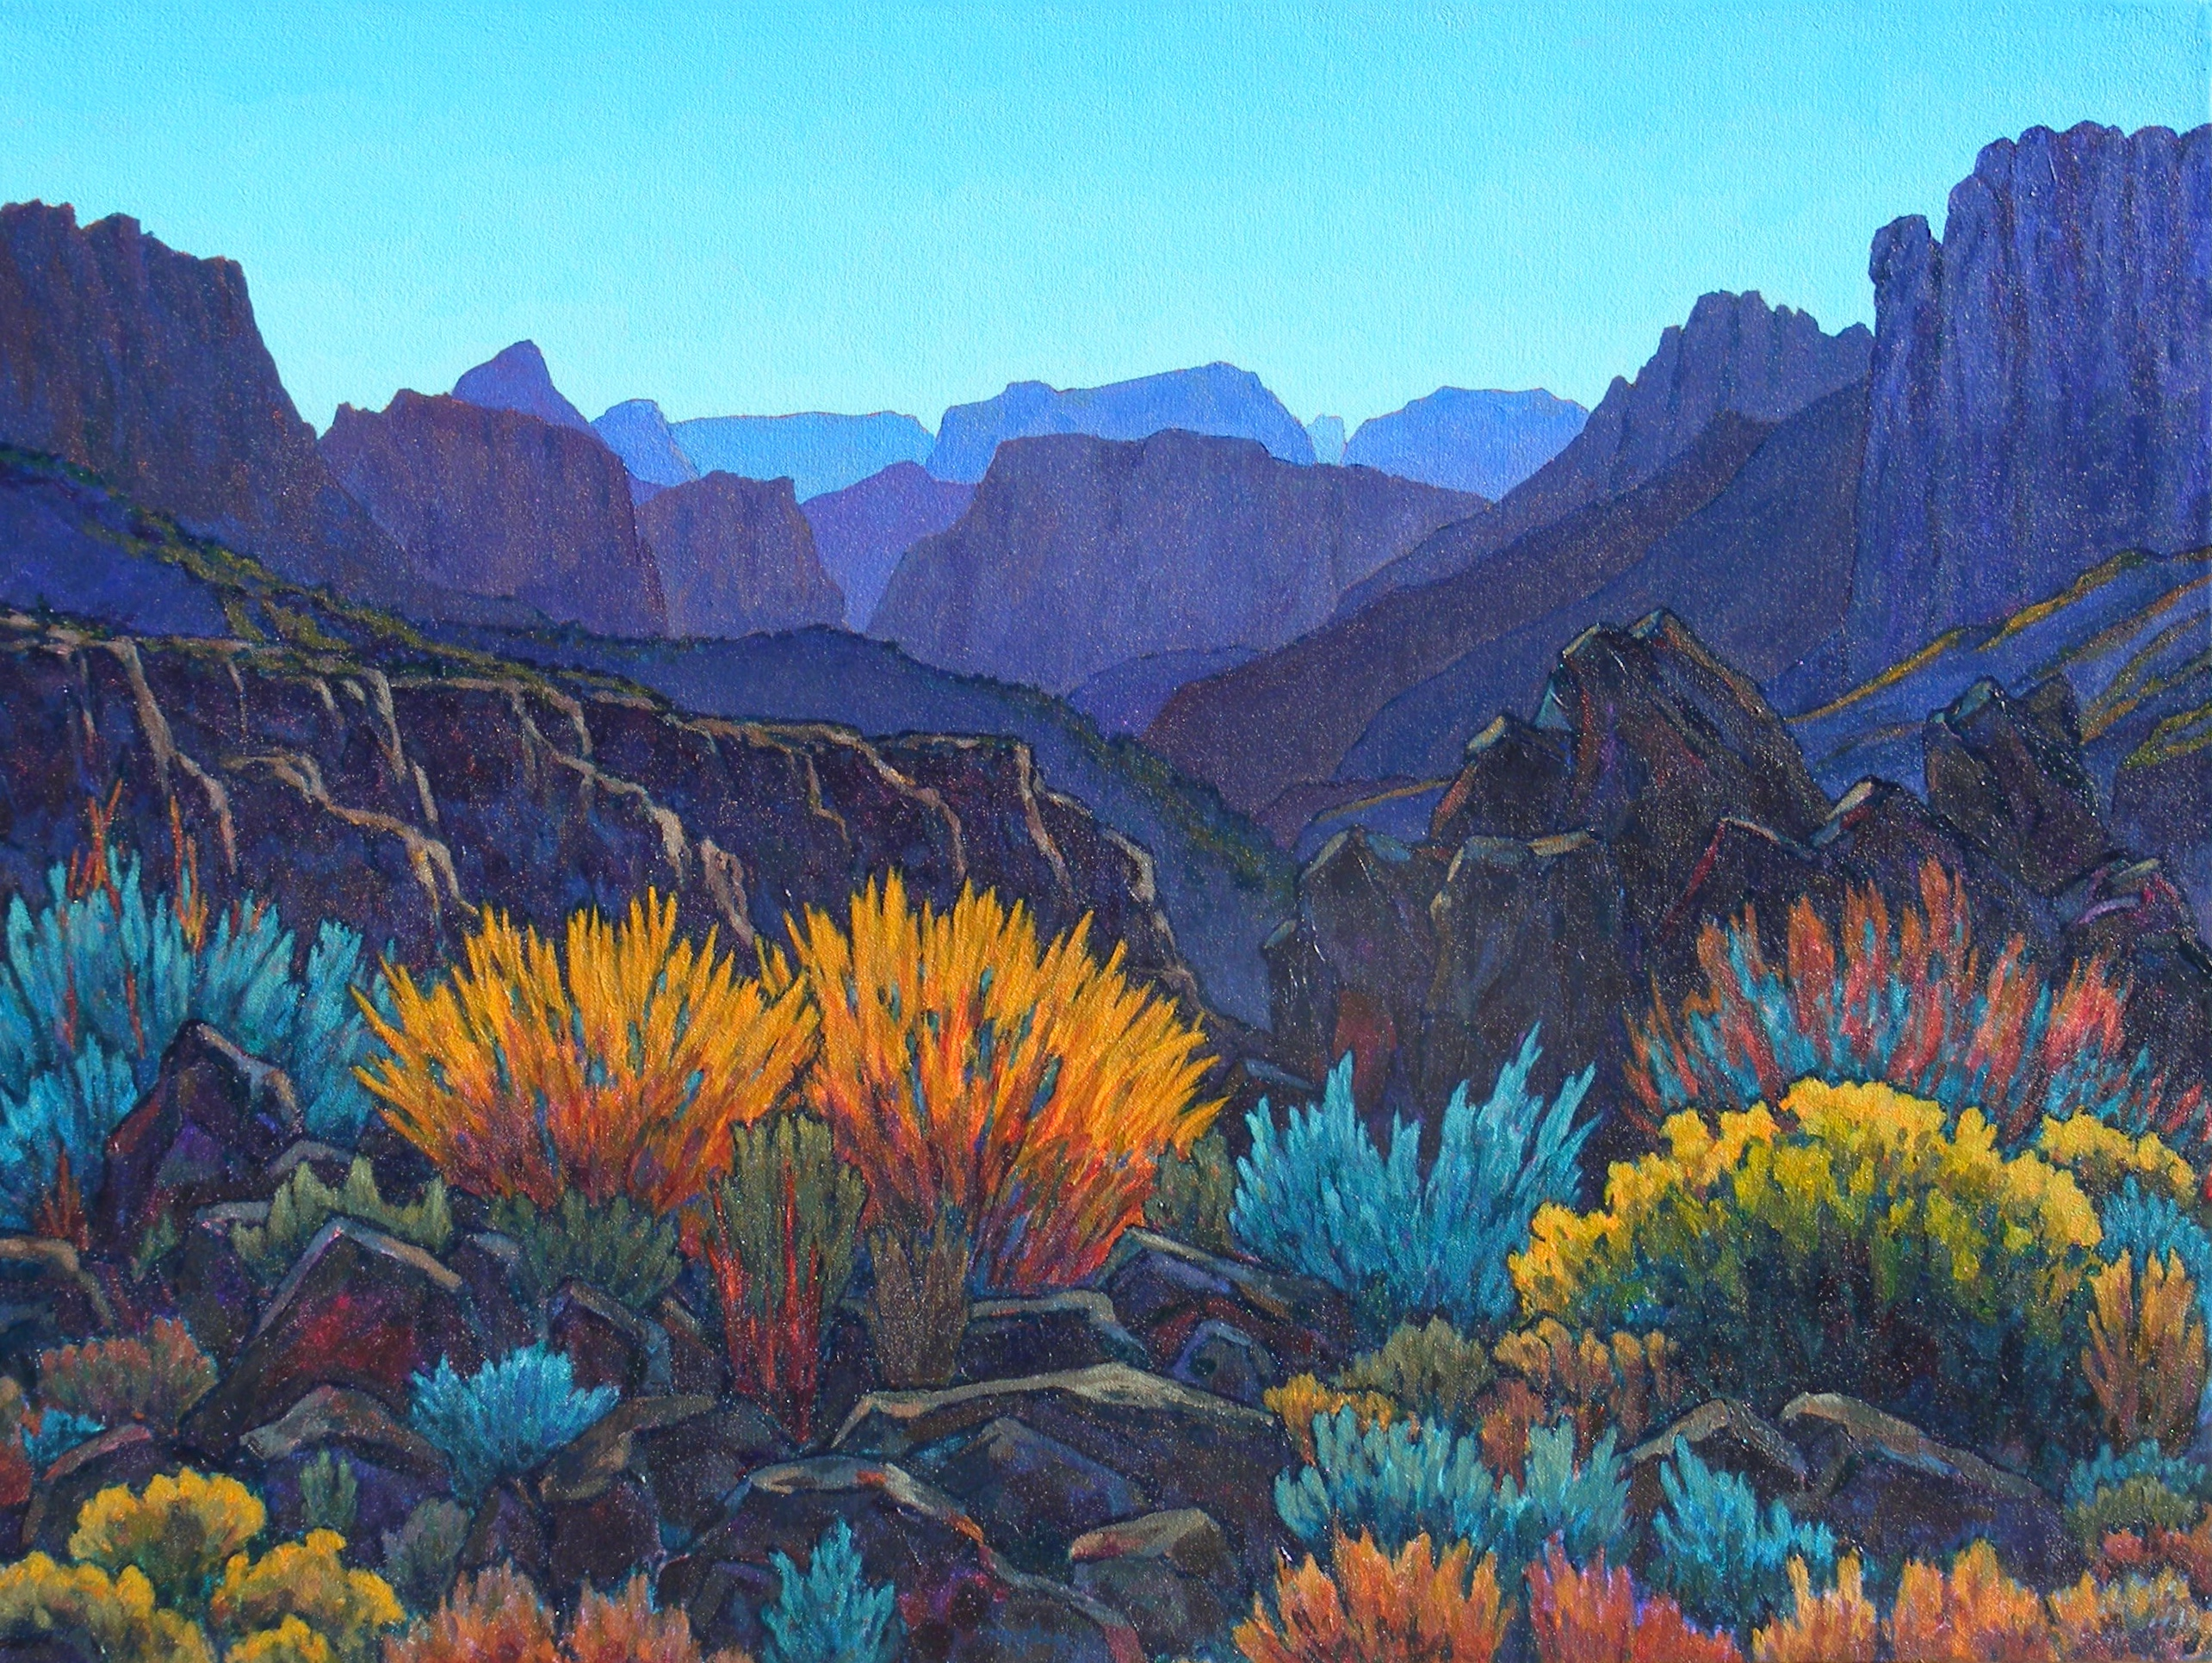 Painting by Royden Card | Photo courtesy of the Zion Natural History Association, Zion National Park, St. George News